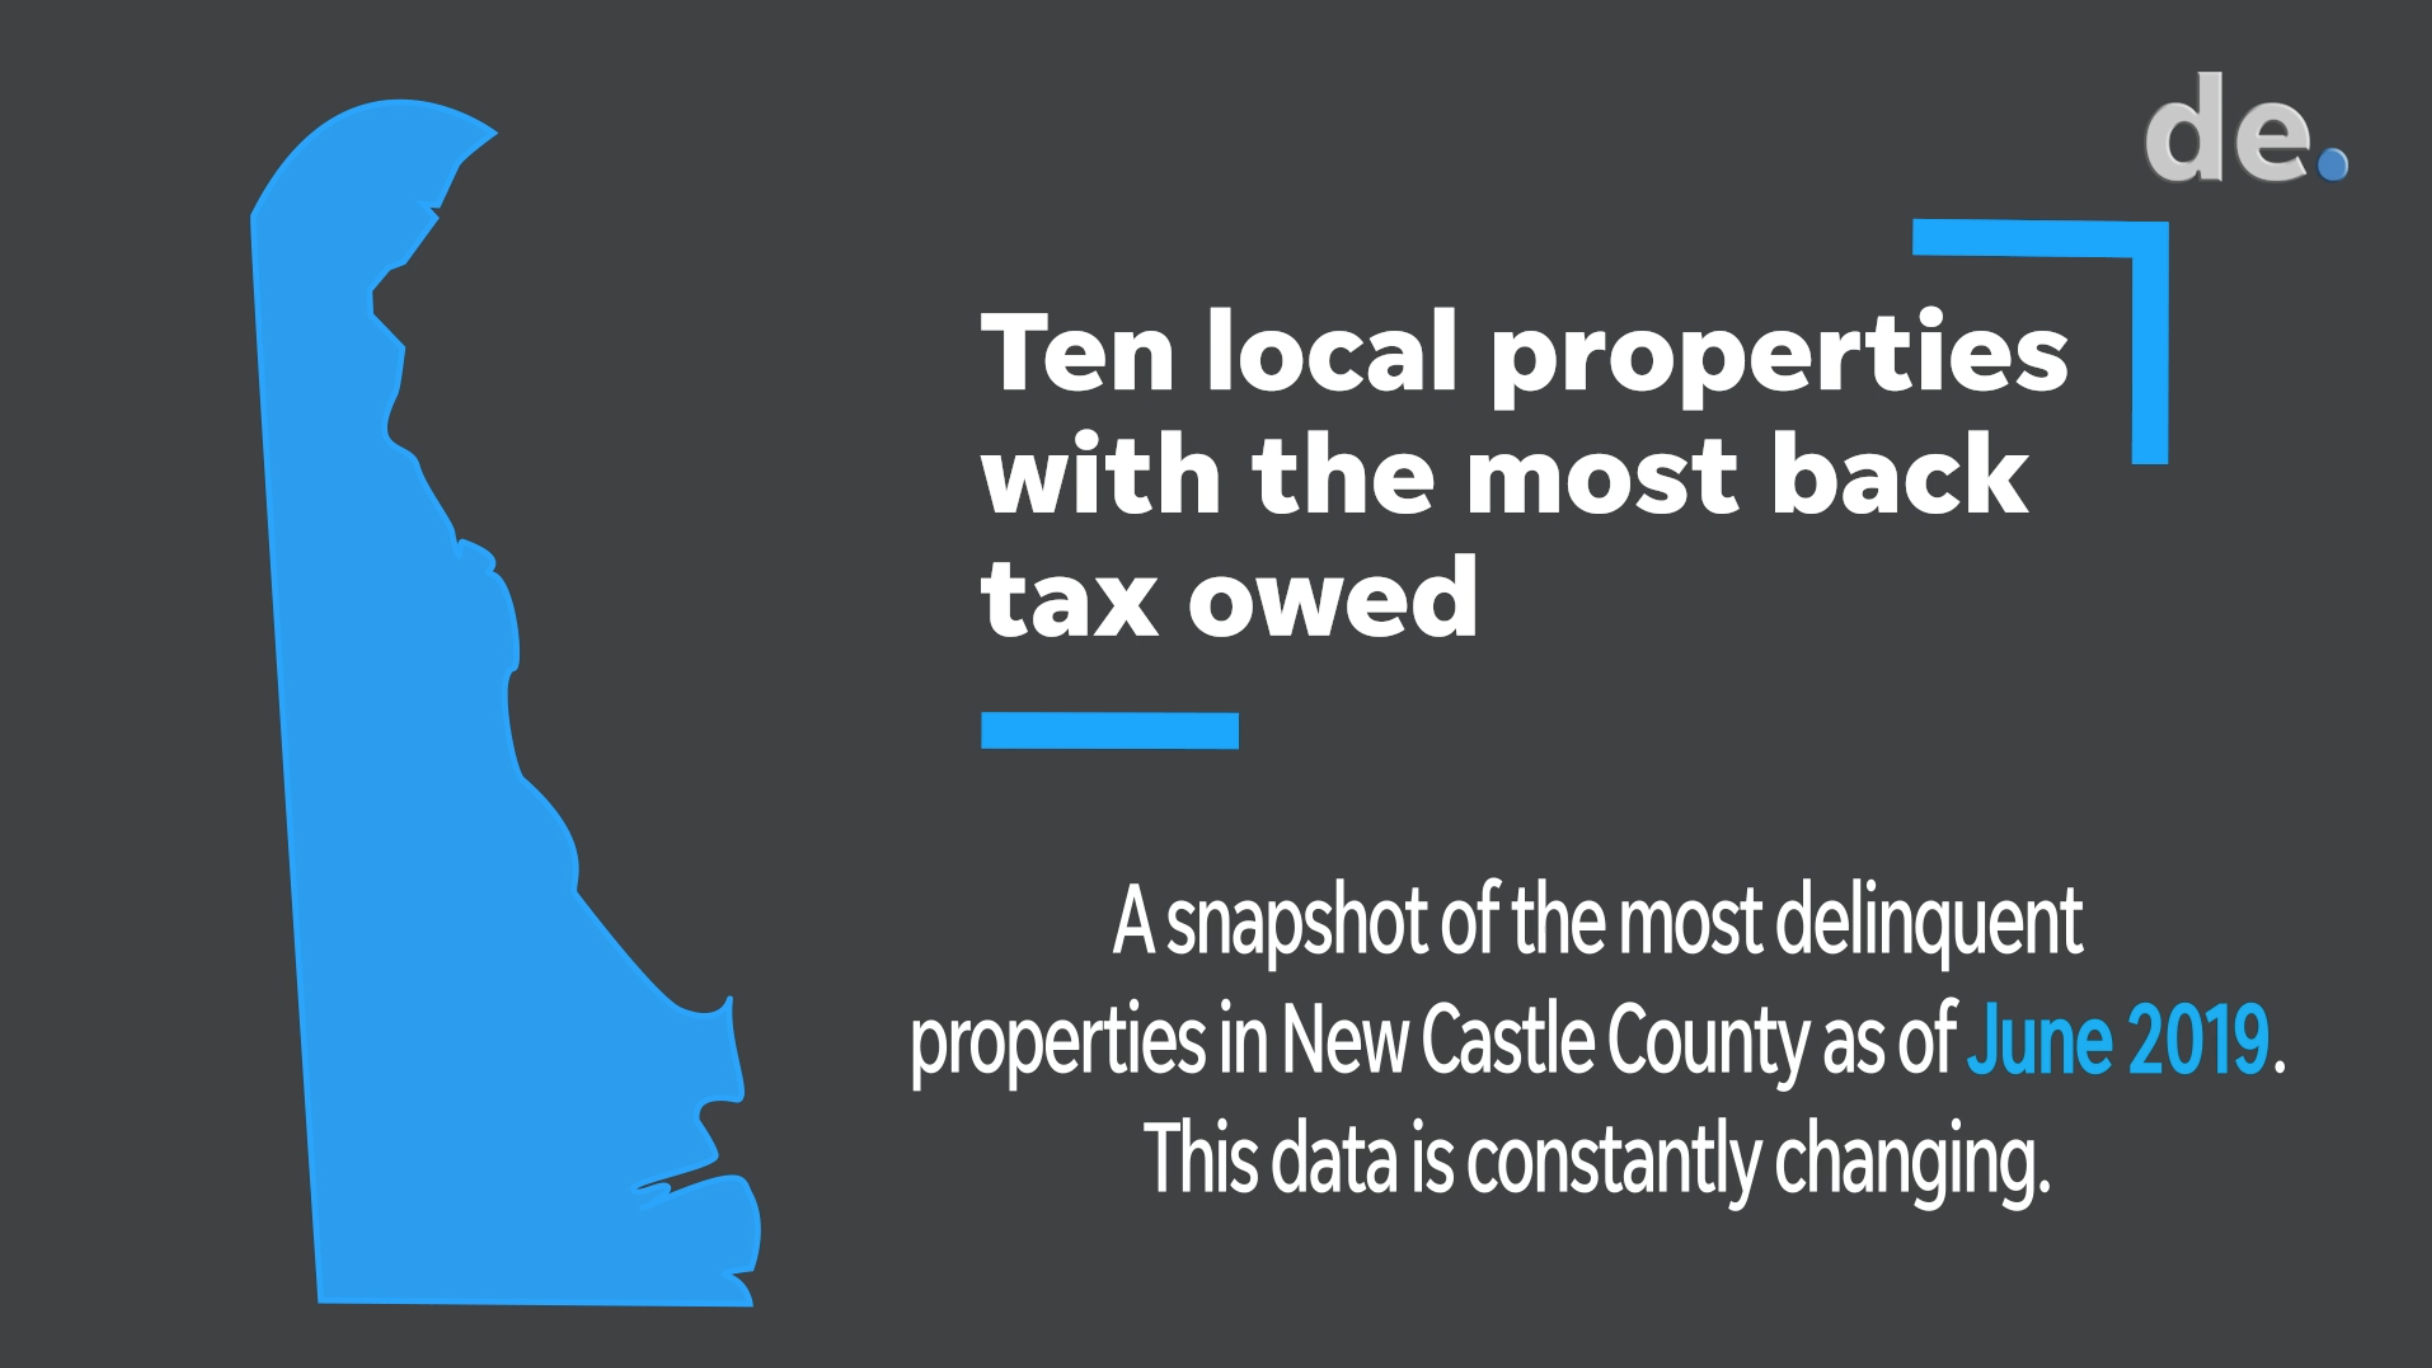 The top ten most delinquent properties in New Castle County